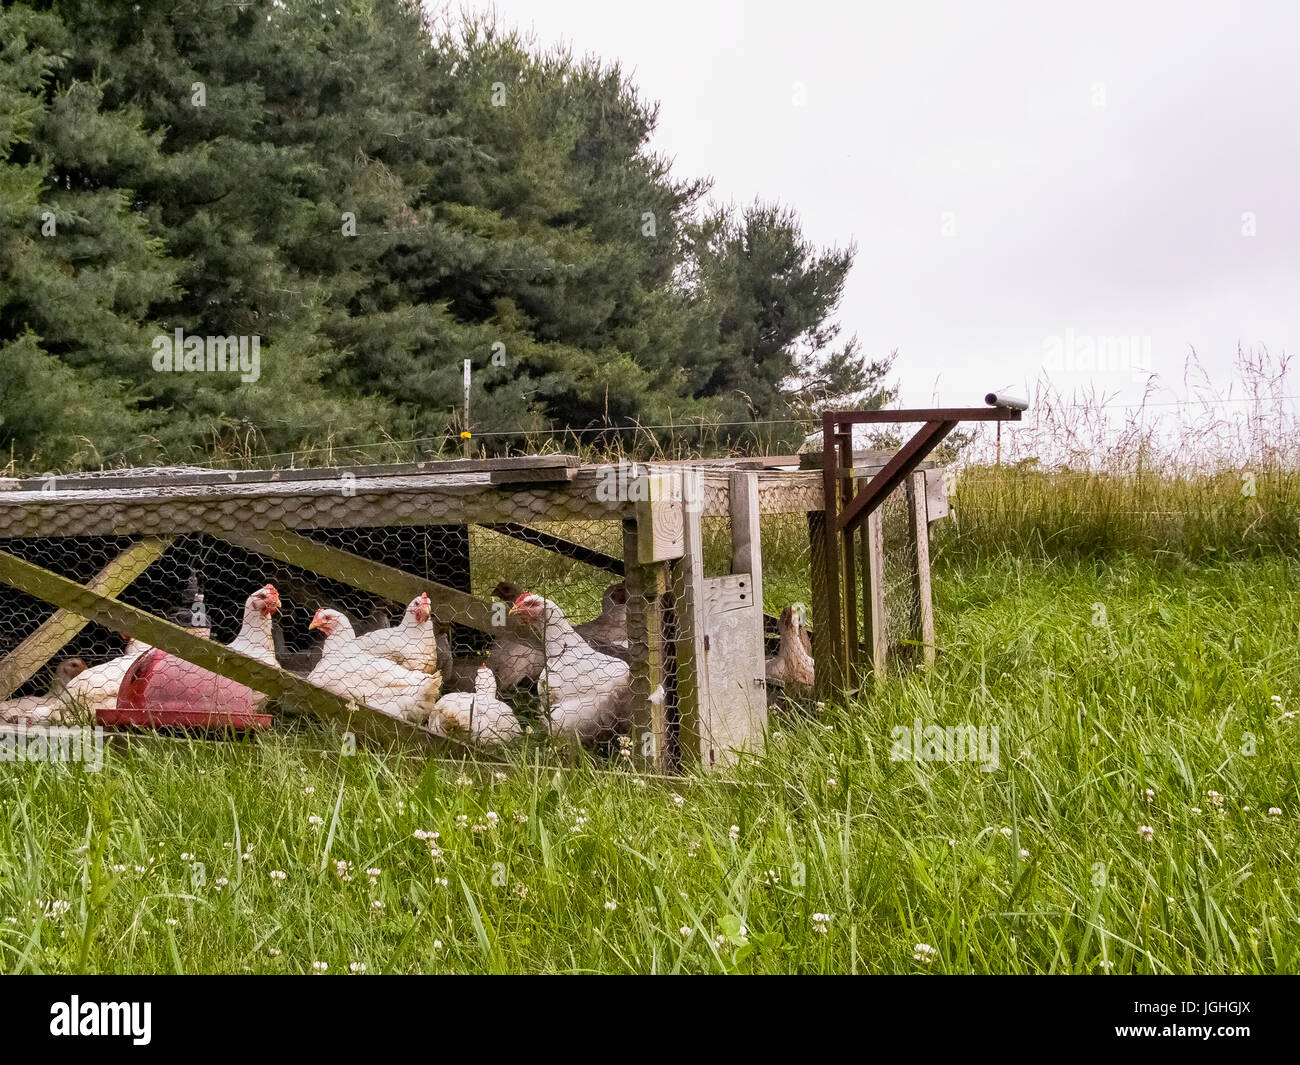 Hens in hen house, grazing rotation - Stock Image